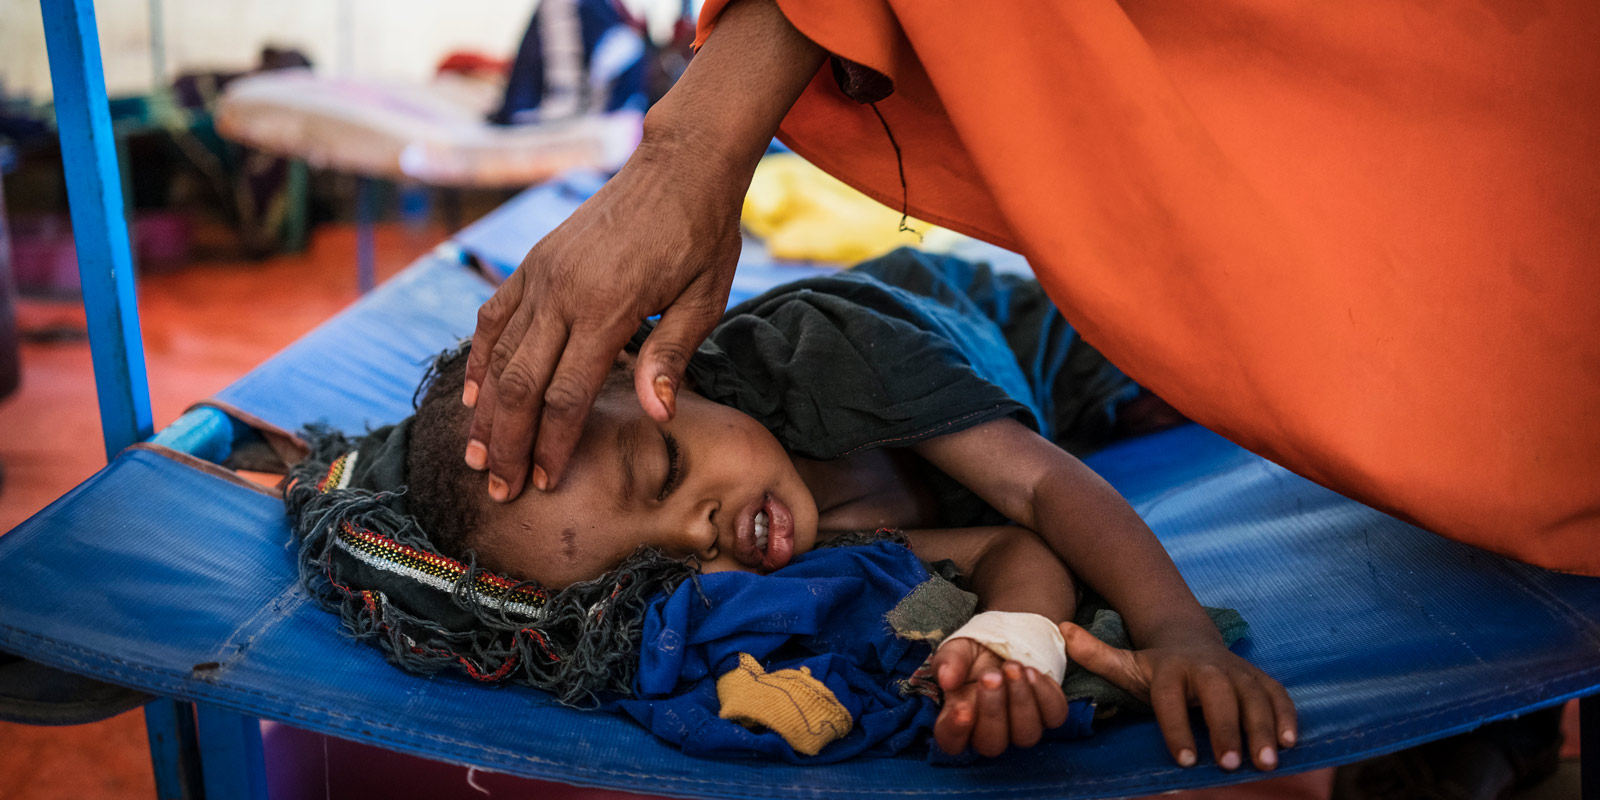 A mother cares for her son who is being treated for cholera at a UNICEF-supported cholera treatment center in Baidoa, Somalia.